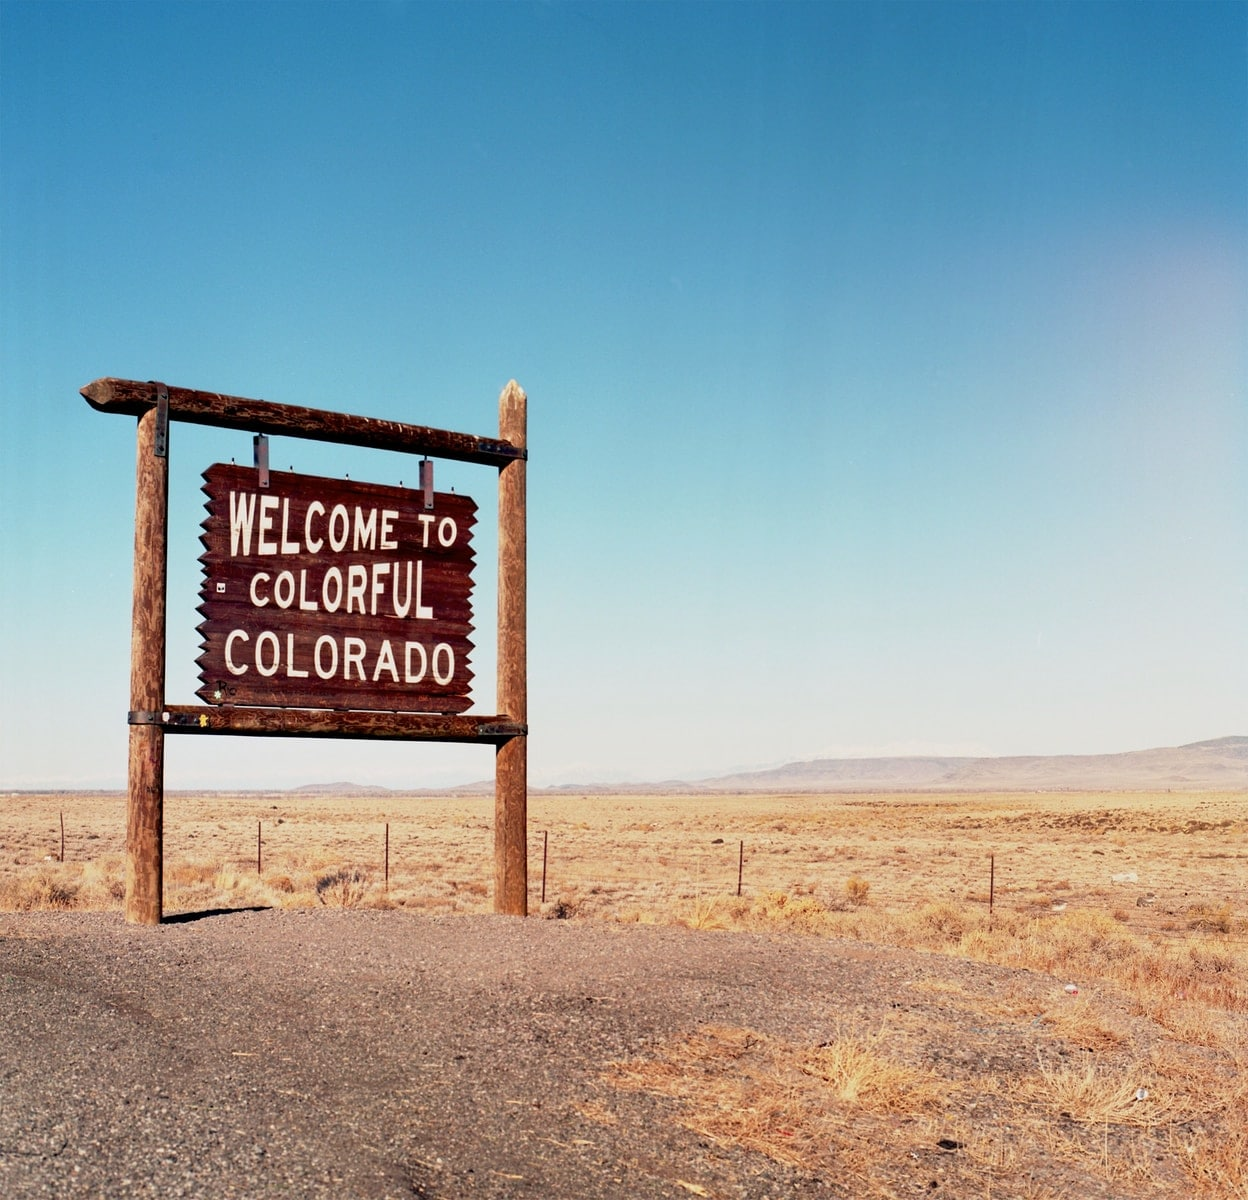 Formation of an LLC in Colorado – What You Need to Consider Before Filing